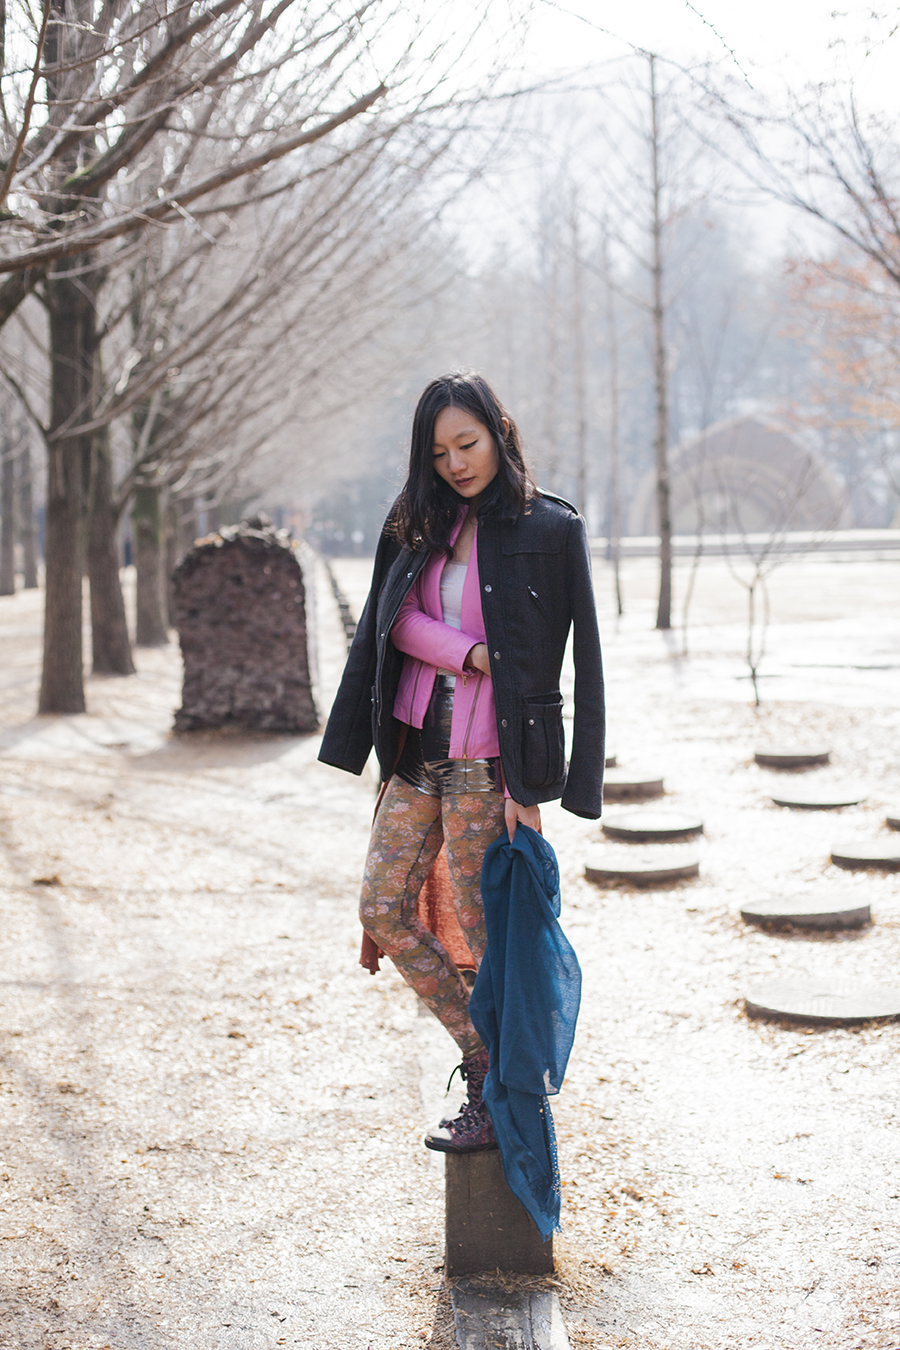 Outfit at Nami Island: Uniqlo grey bratop camisole, Viparo pink lambskin leather jacket with gold zipper, Forever 21 silver party shorts, Urban Outfitters floral lace tights, H&M grey men's coat, Marshalls blue shawl with gold studs.